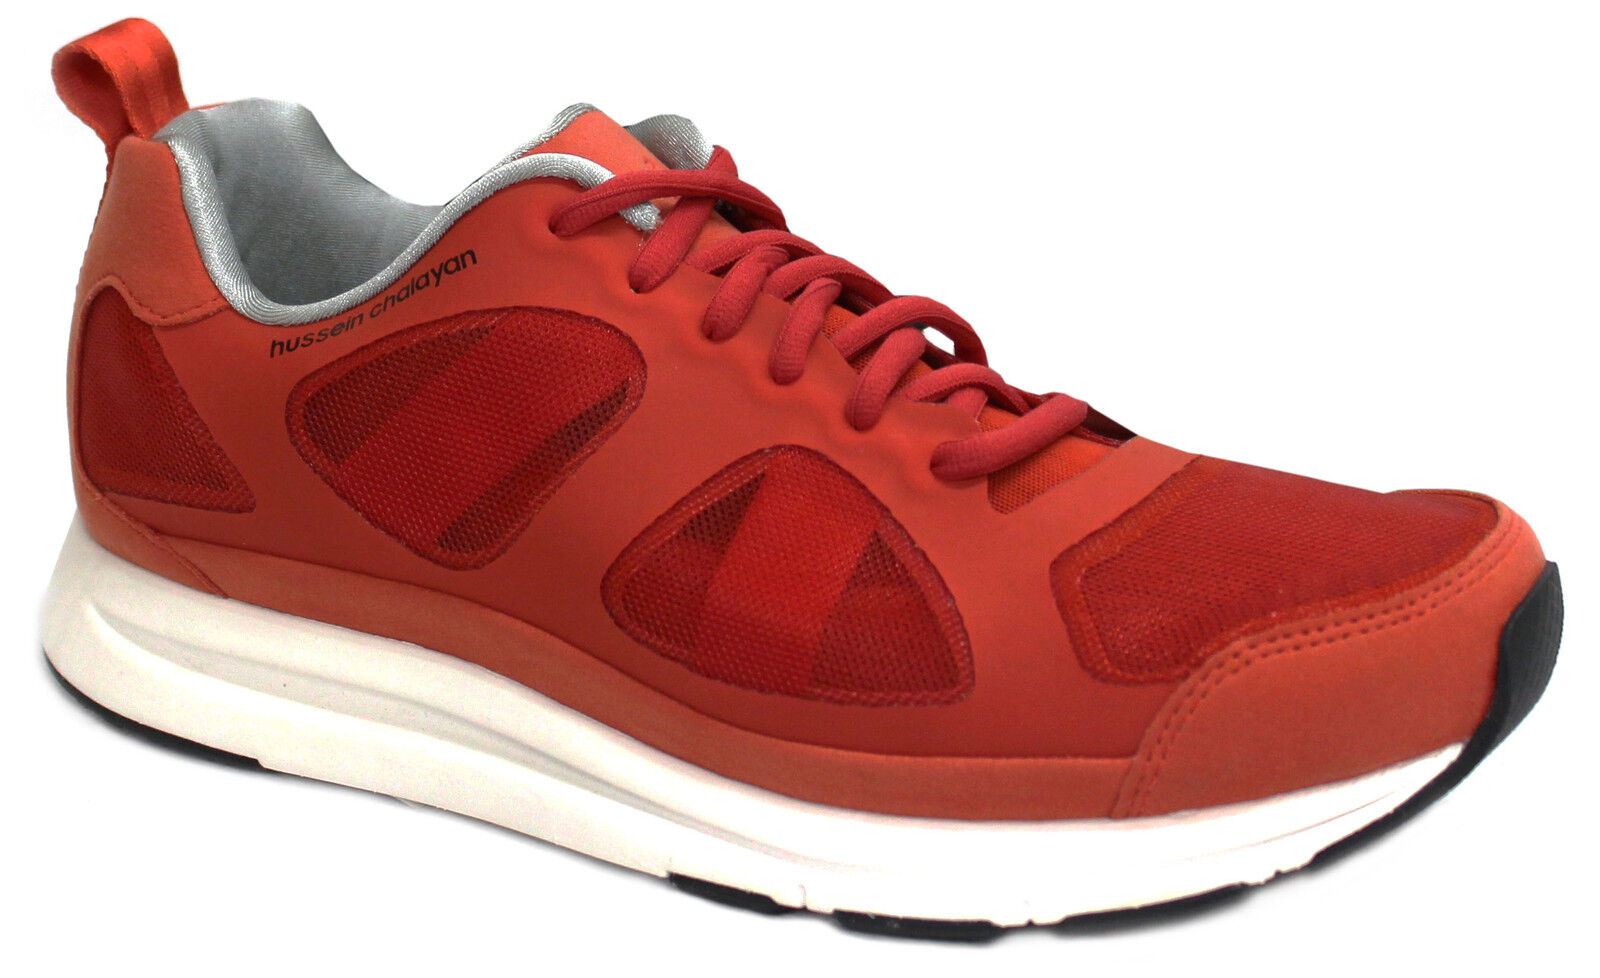 Puma Hussein Chalayan Haast Summer Lo Red Uomo Donna Trainers 355735 02 D112